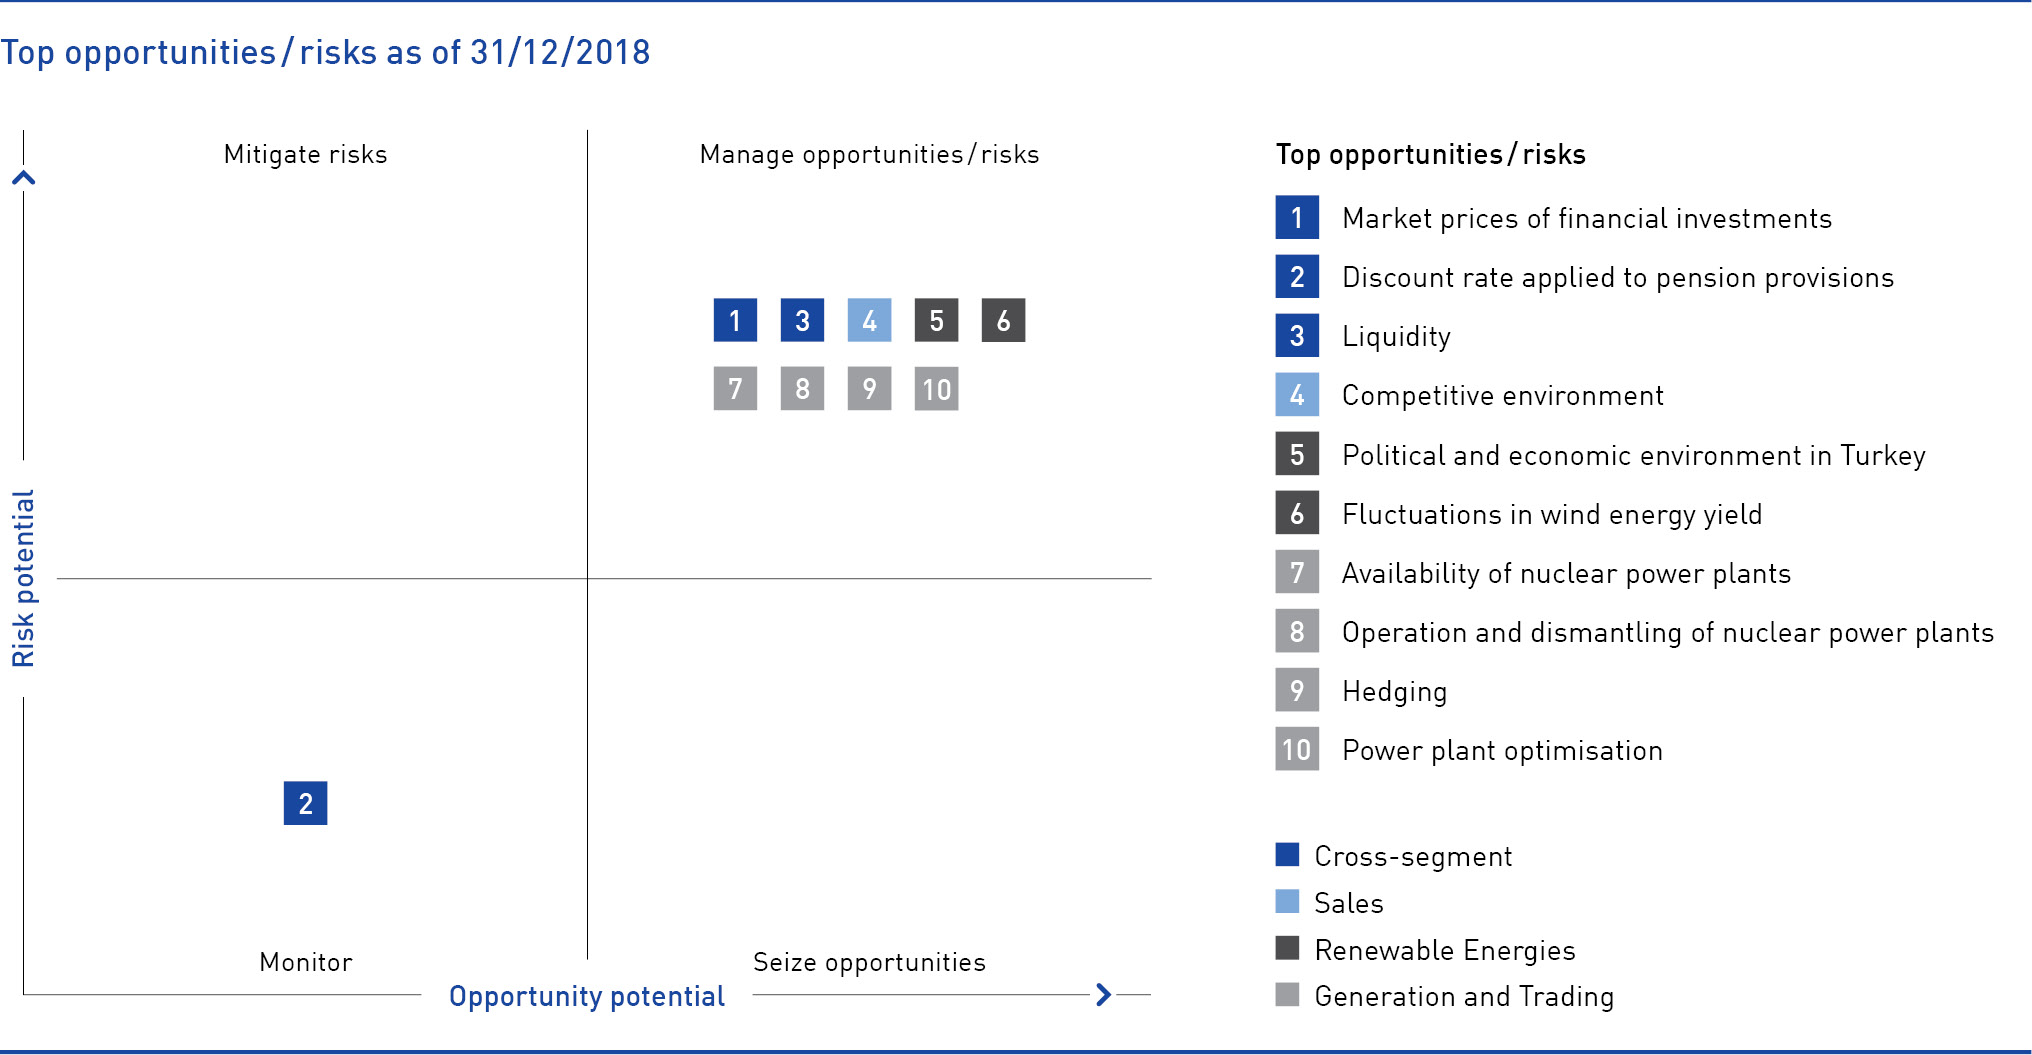 Top opportunities, risks as of 31.12.2018